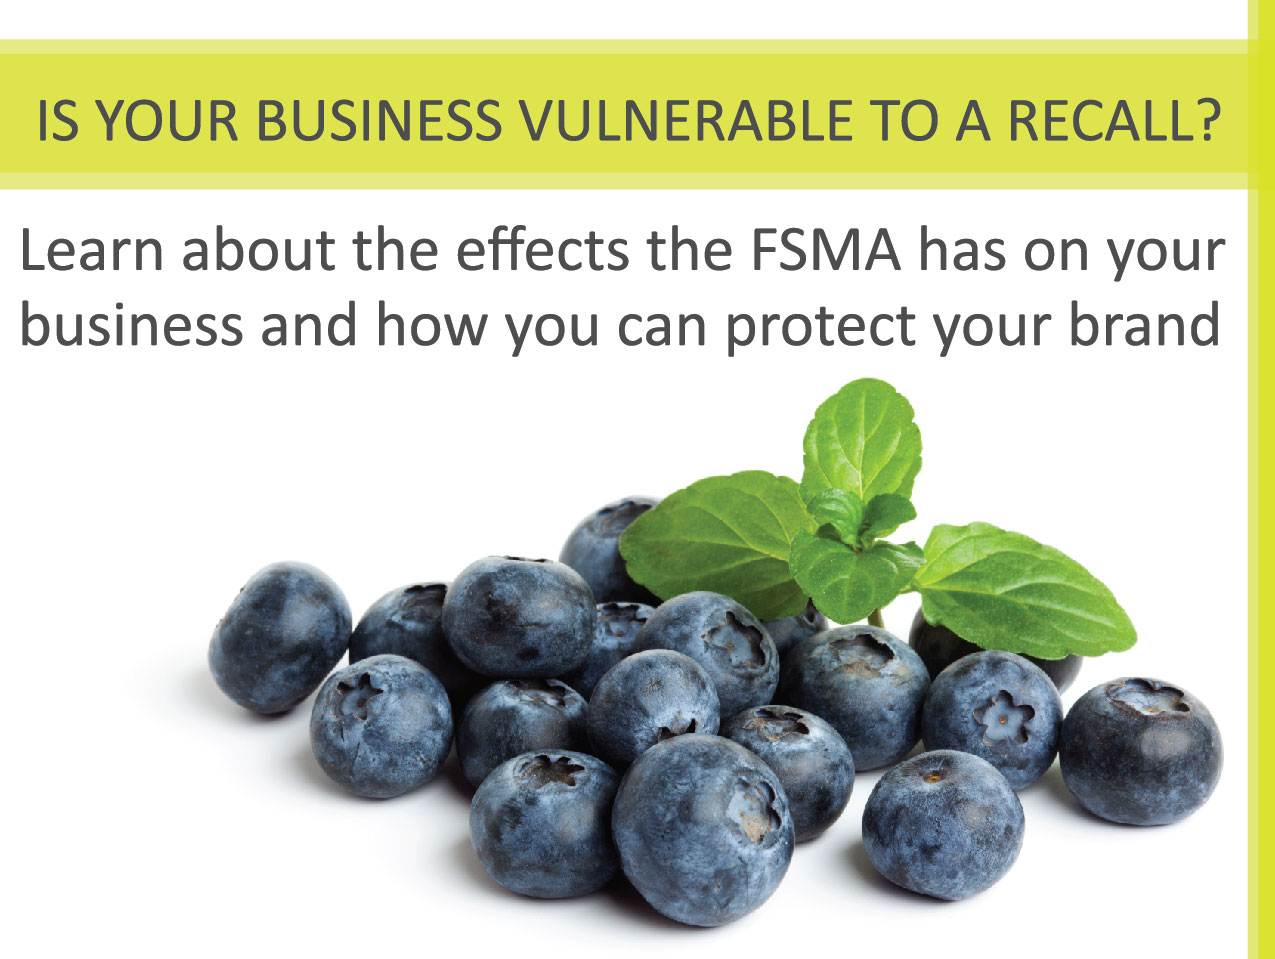 join our traceability webinar to learn about food safety and recall regulations